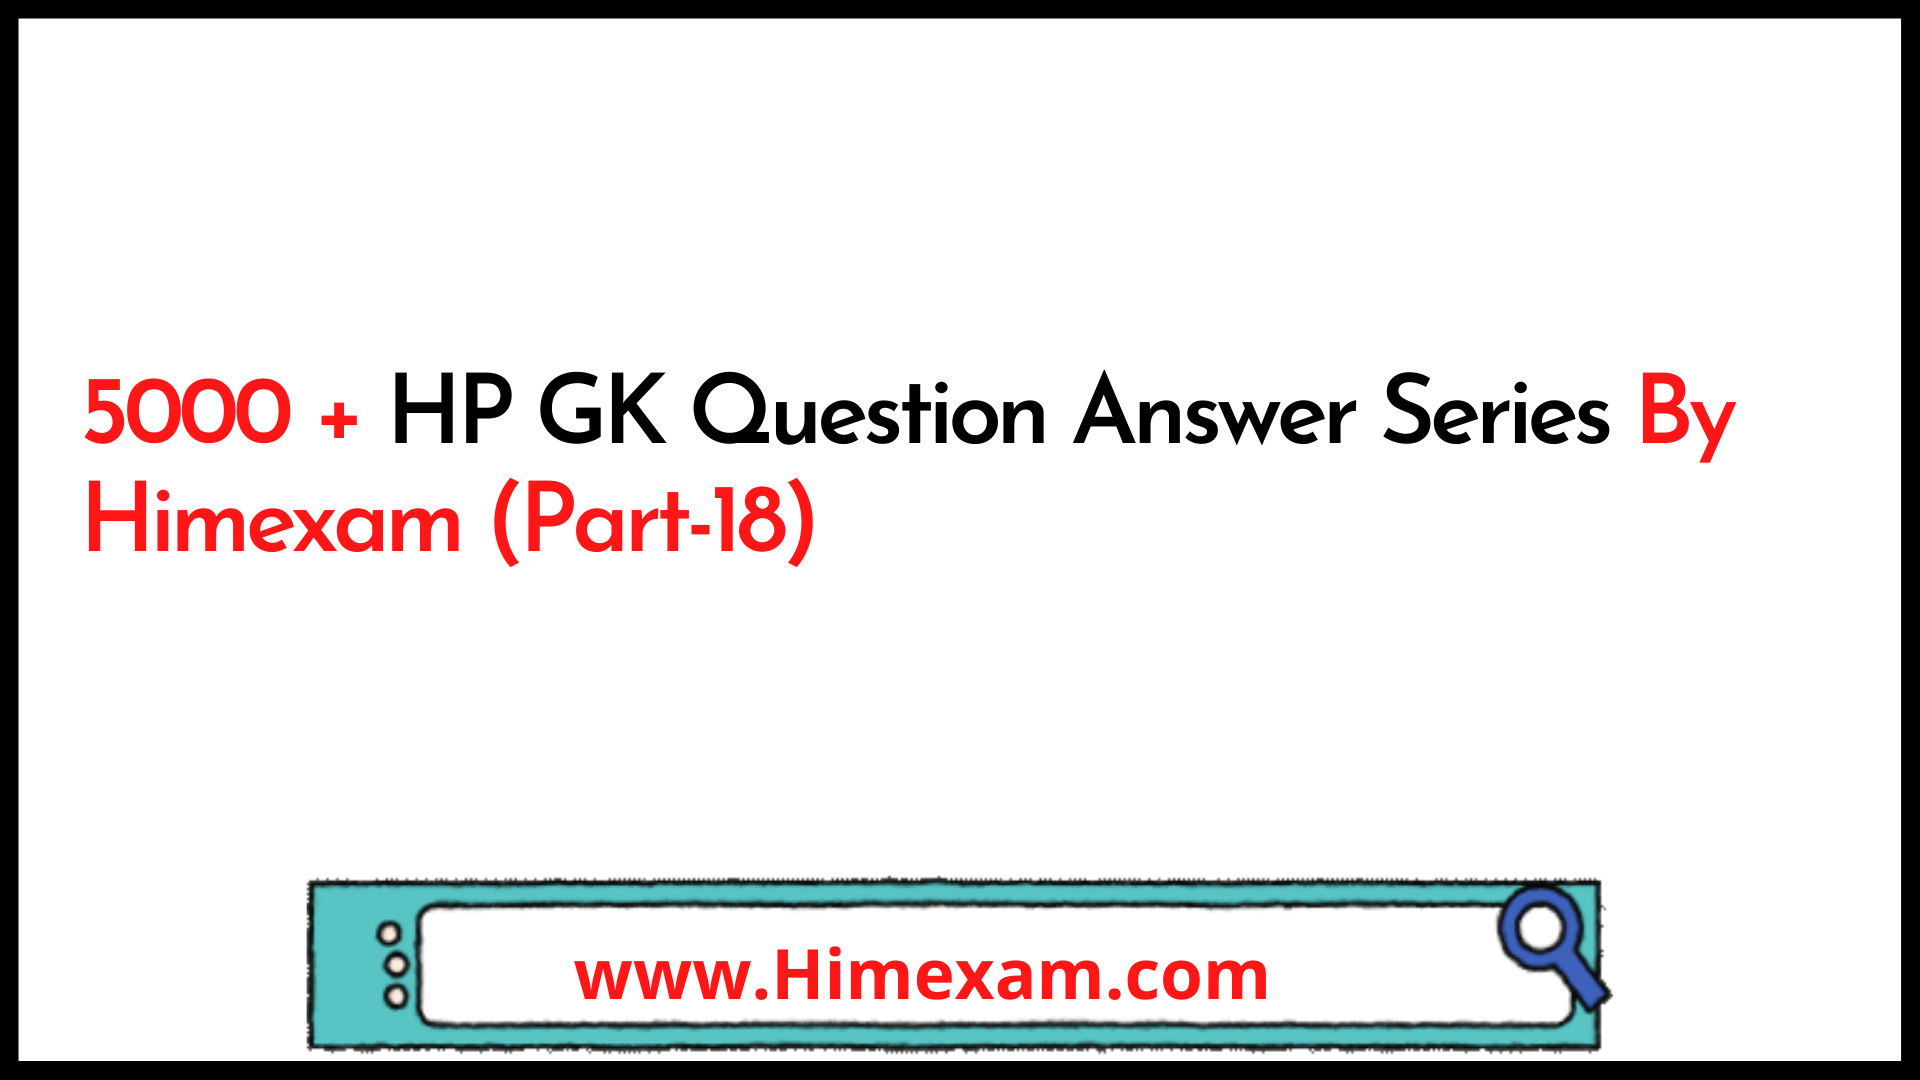 5000 + HP GK Question Answer Series By Himexam (Part-18)